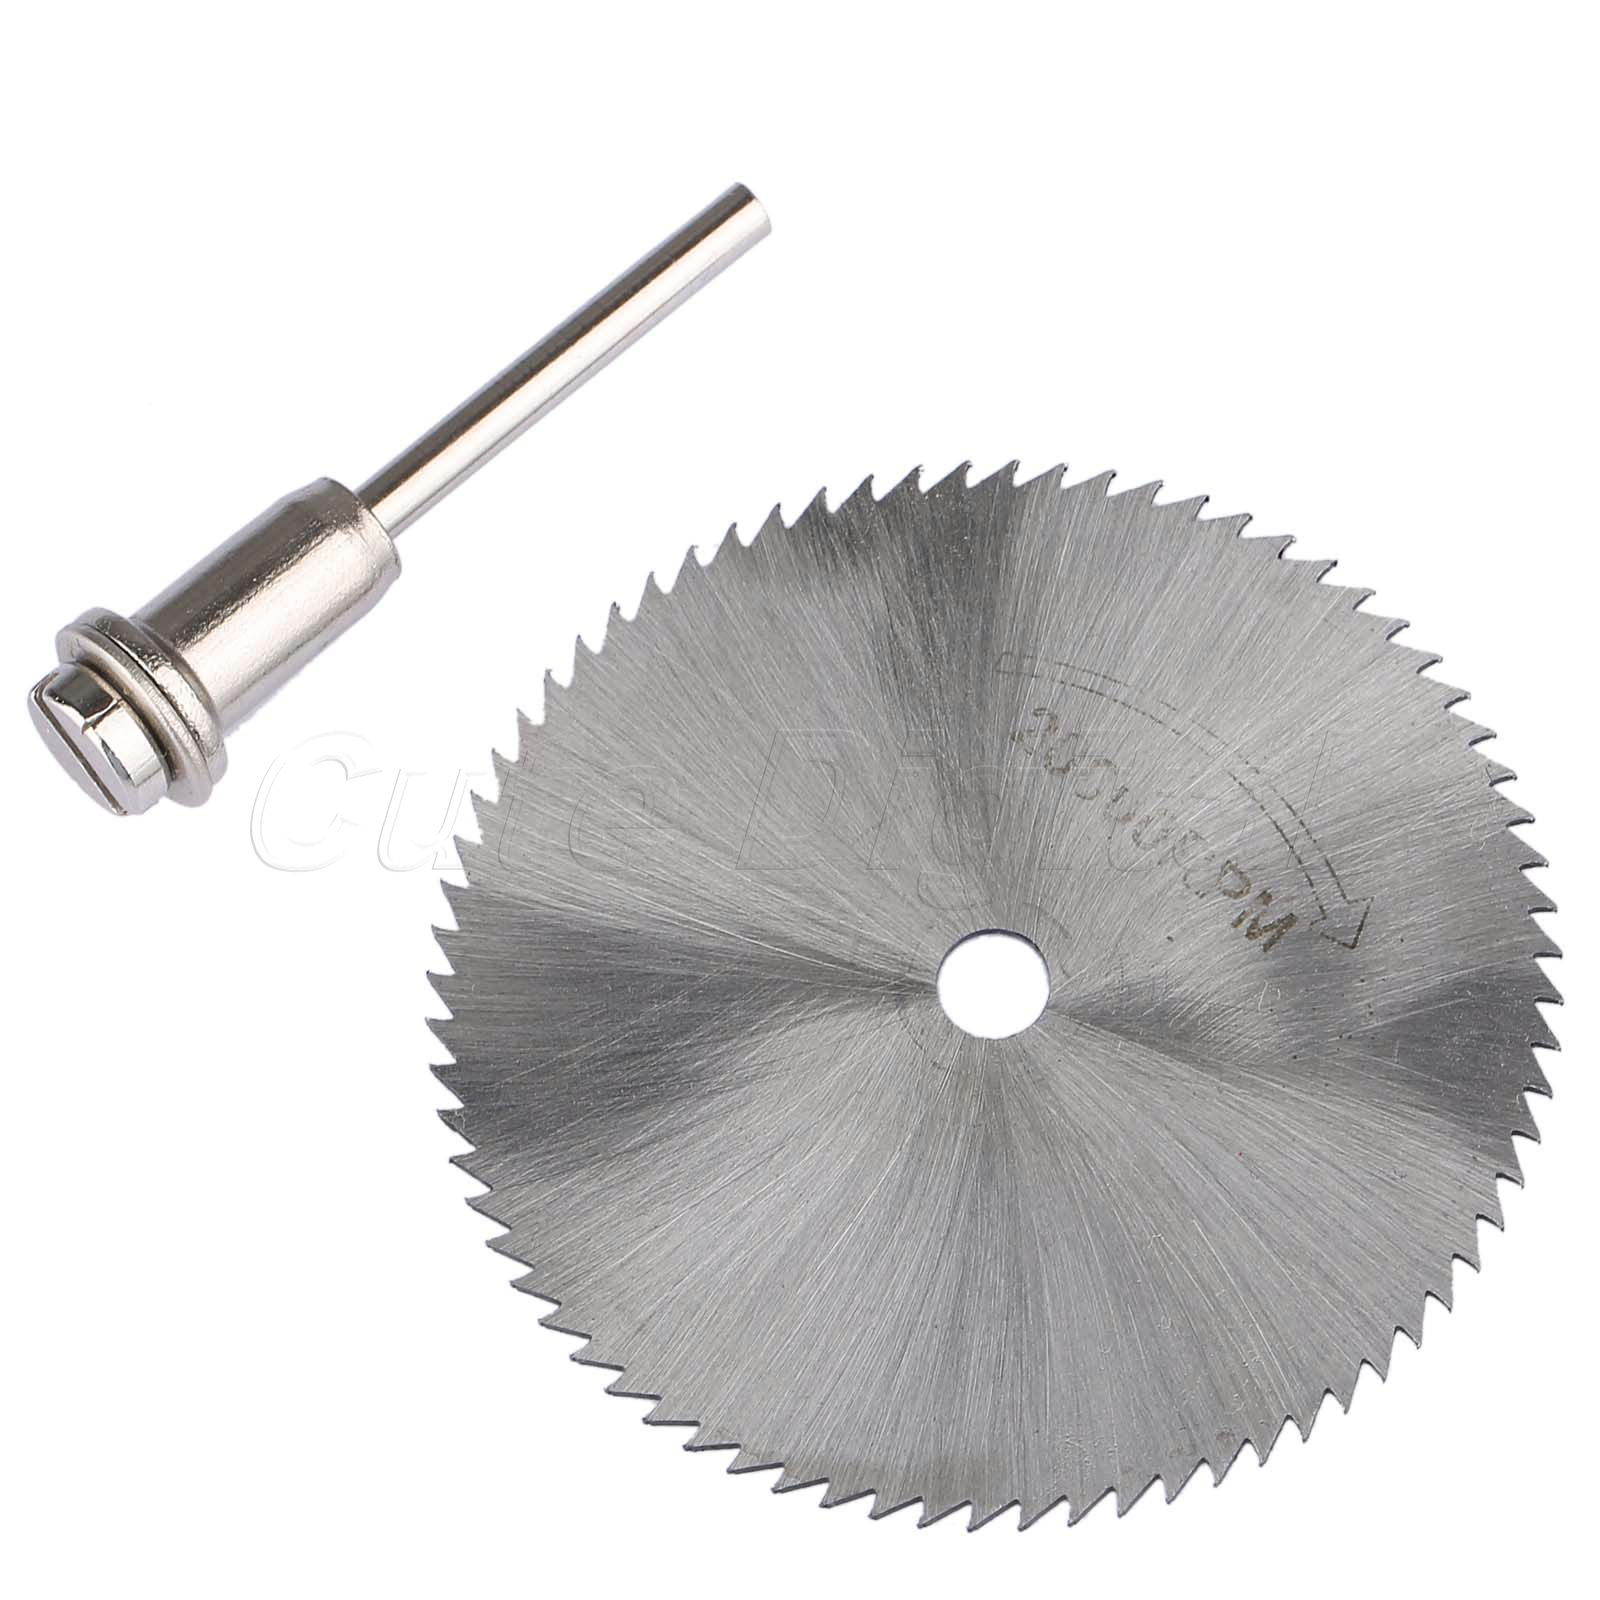 60mm Diamond Cutting Disc Mandrel Mini Circular Saw Blade Electric Saw For Drill Steel Rotary Cutting Tool Dremel Accessories